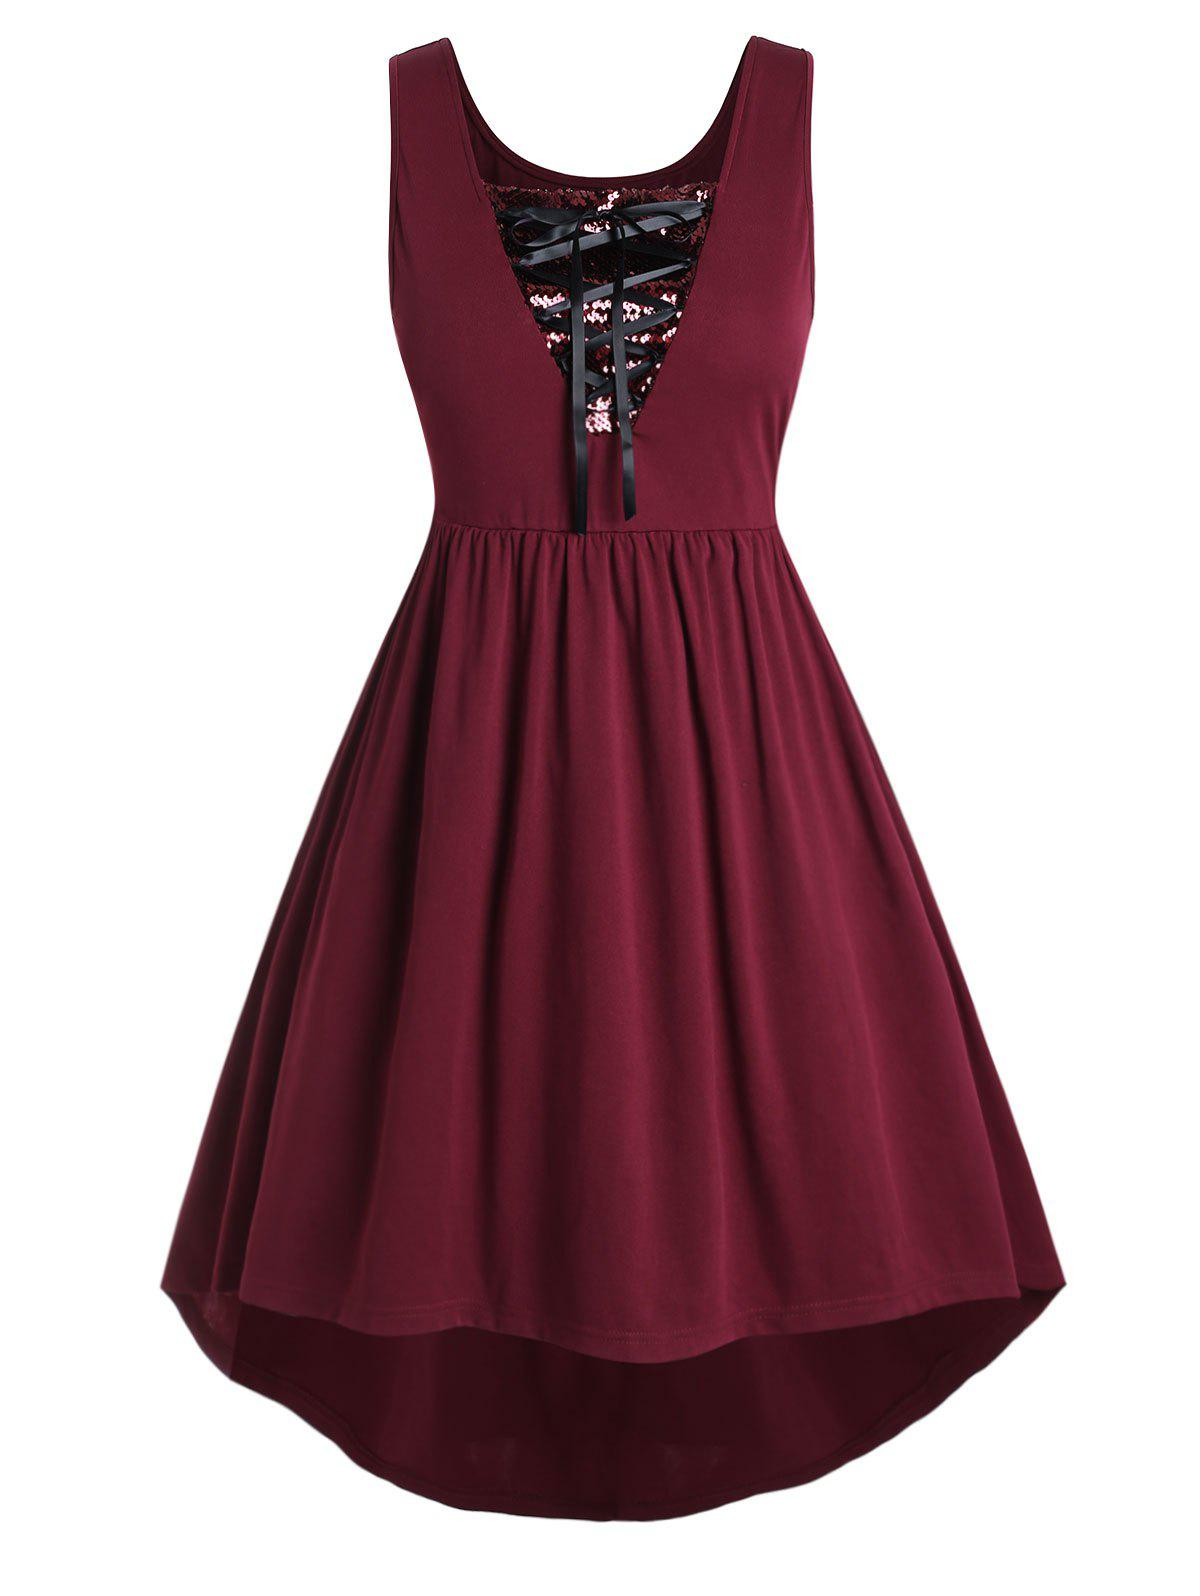 Plus Size Lace Up Sequin Dress - RED WINE 5X